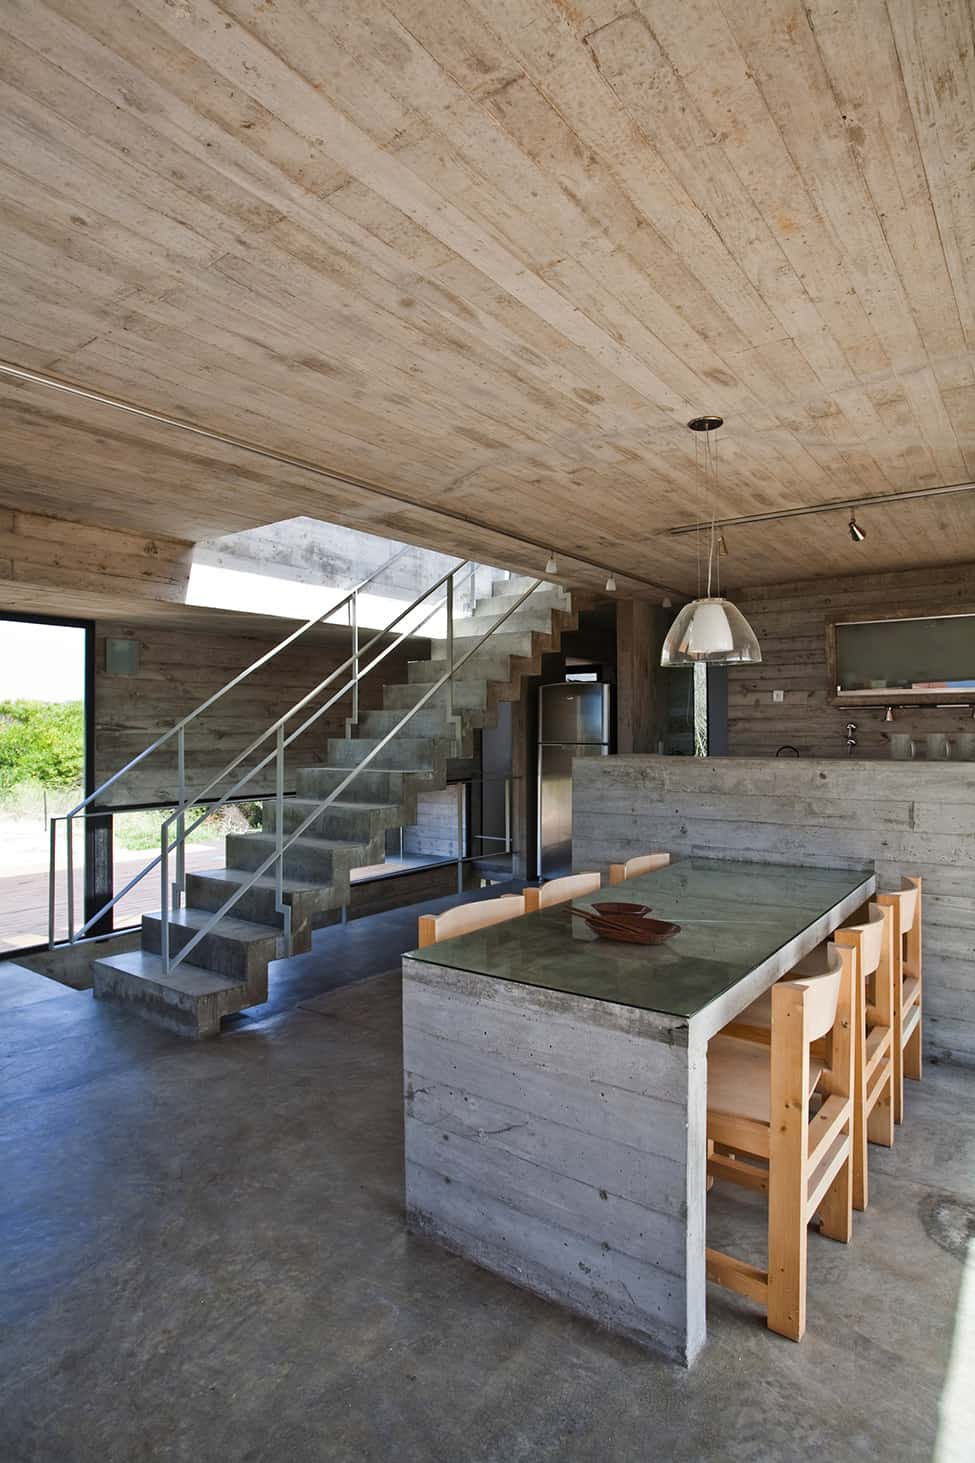 Industrial Aesthetic Values in a Beach Home by BAK Architects (20)